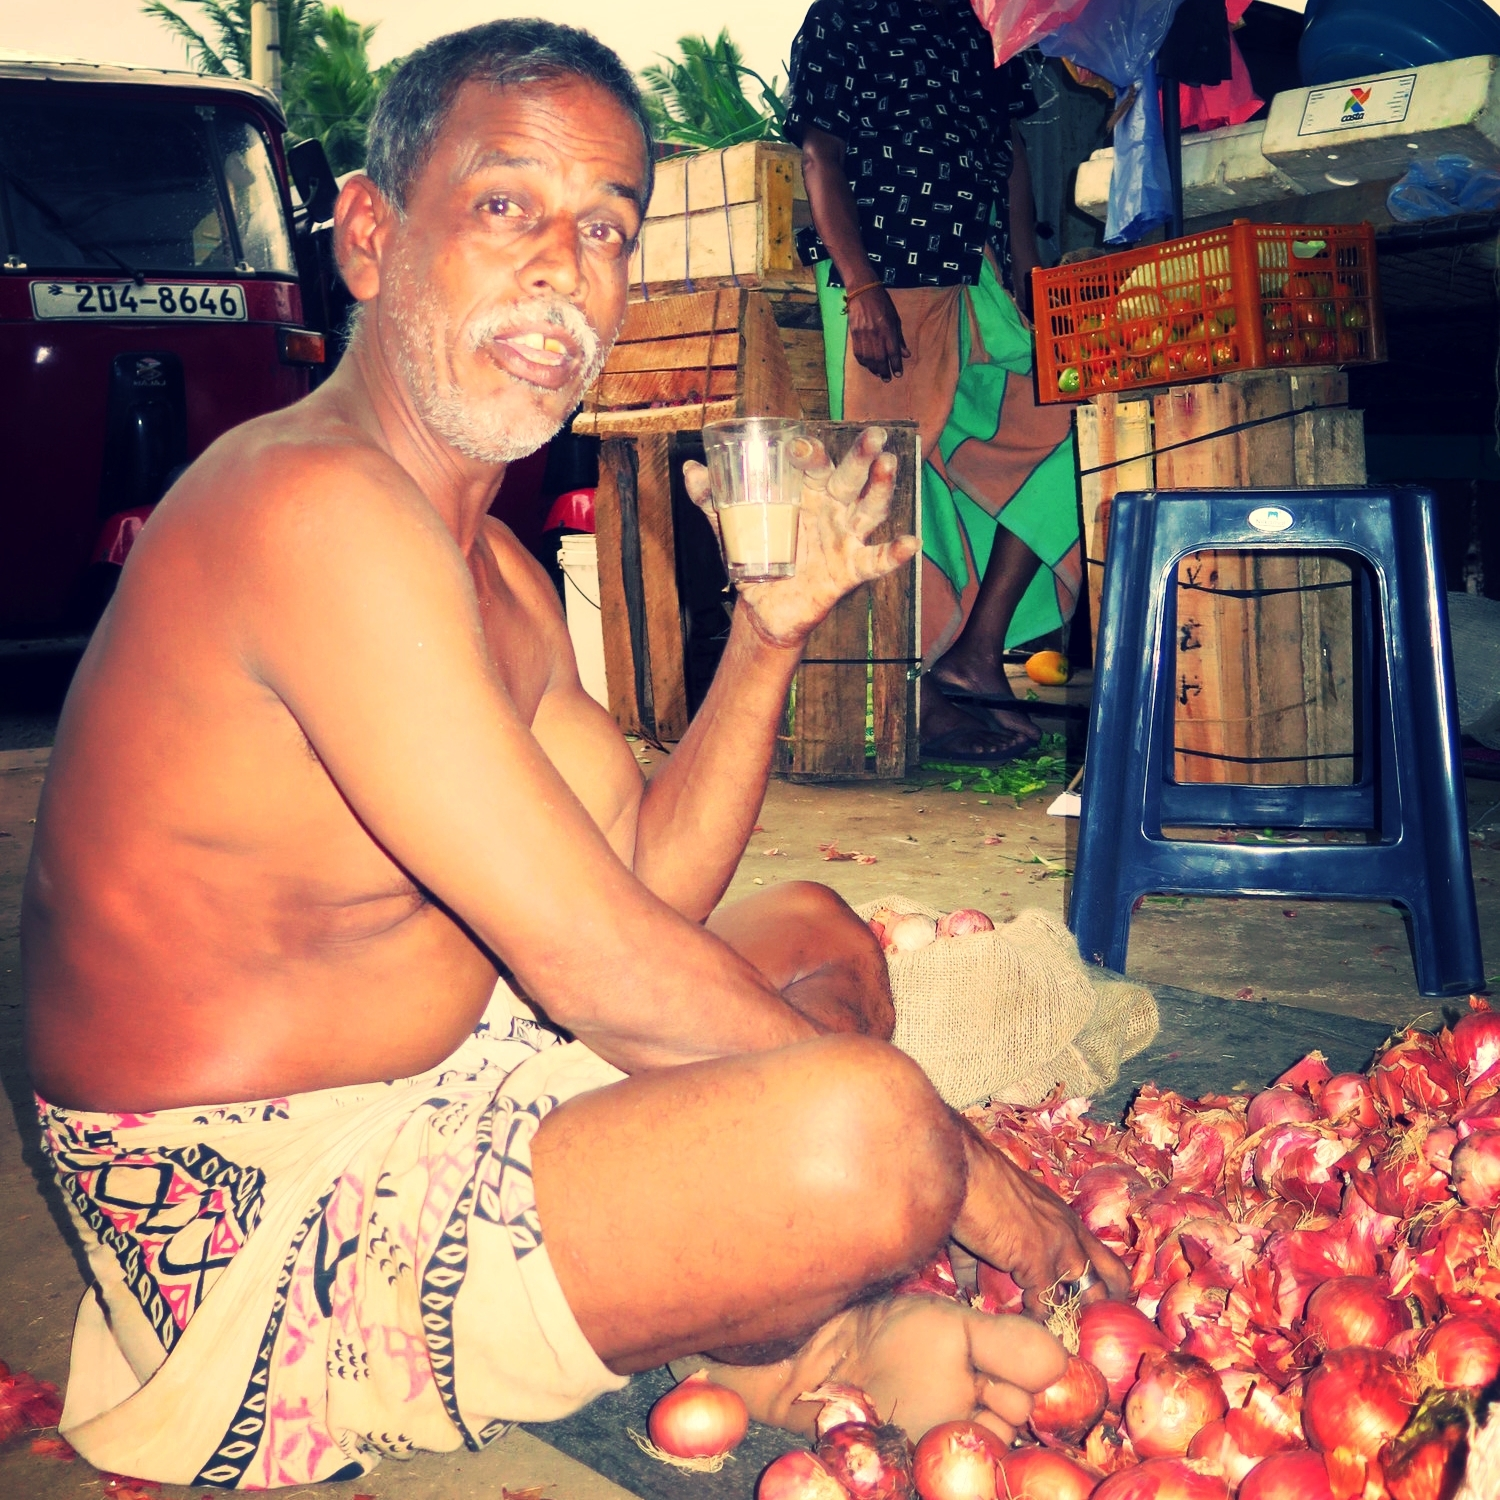 Sri lankan Vegetable seller